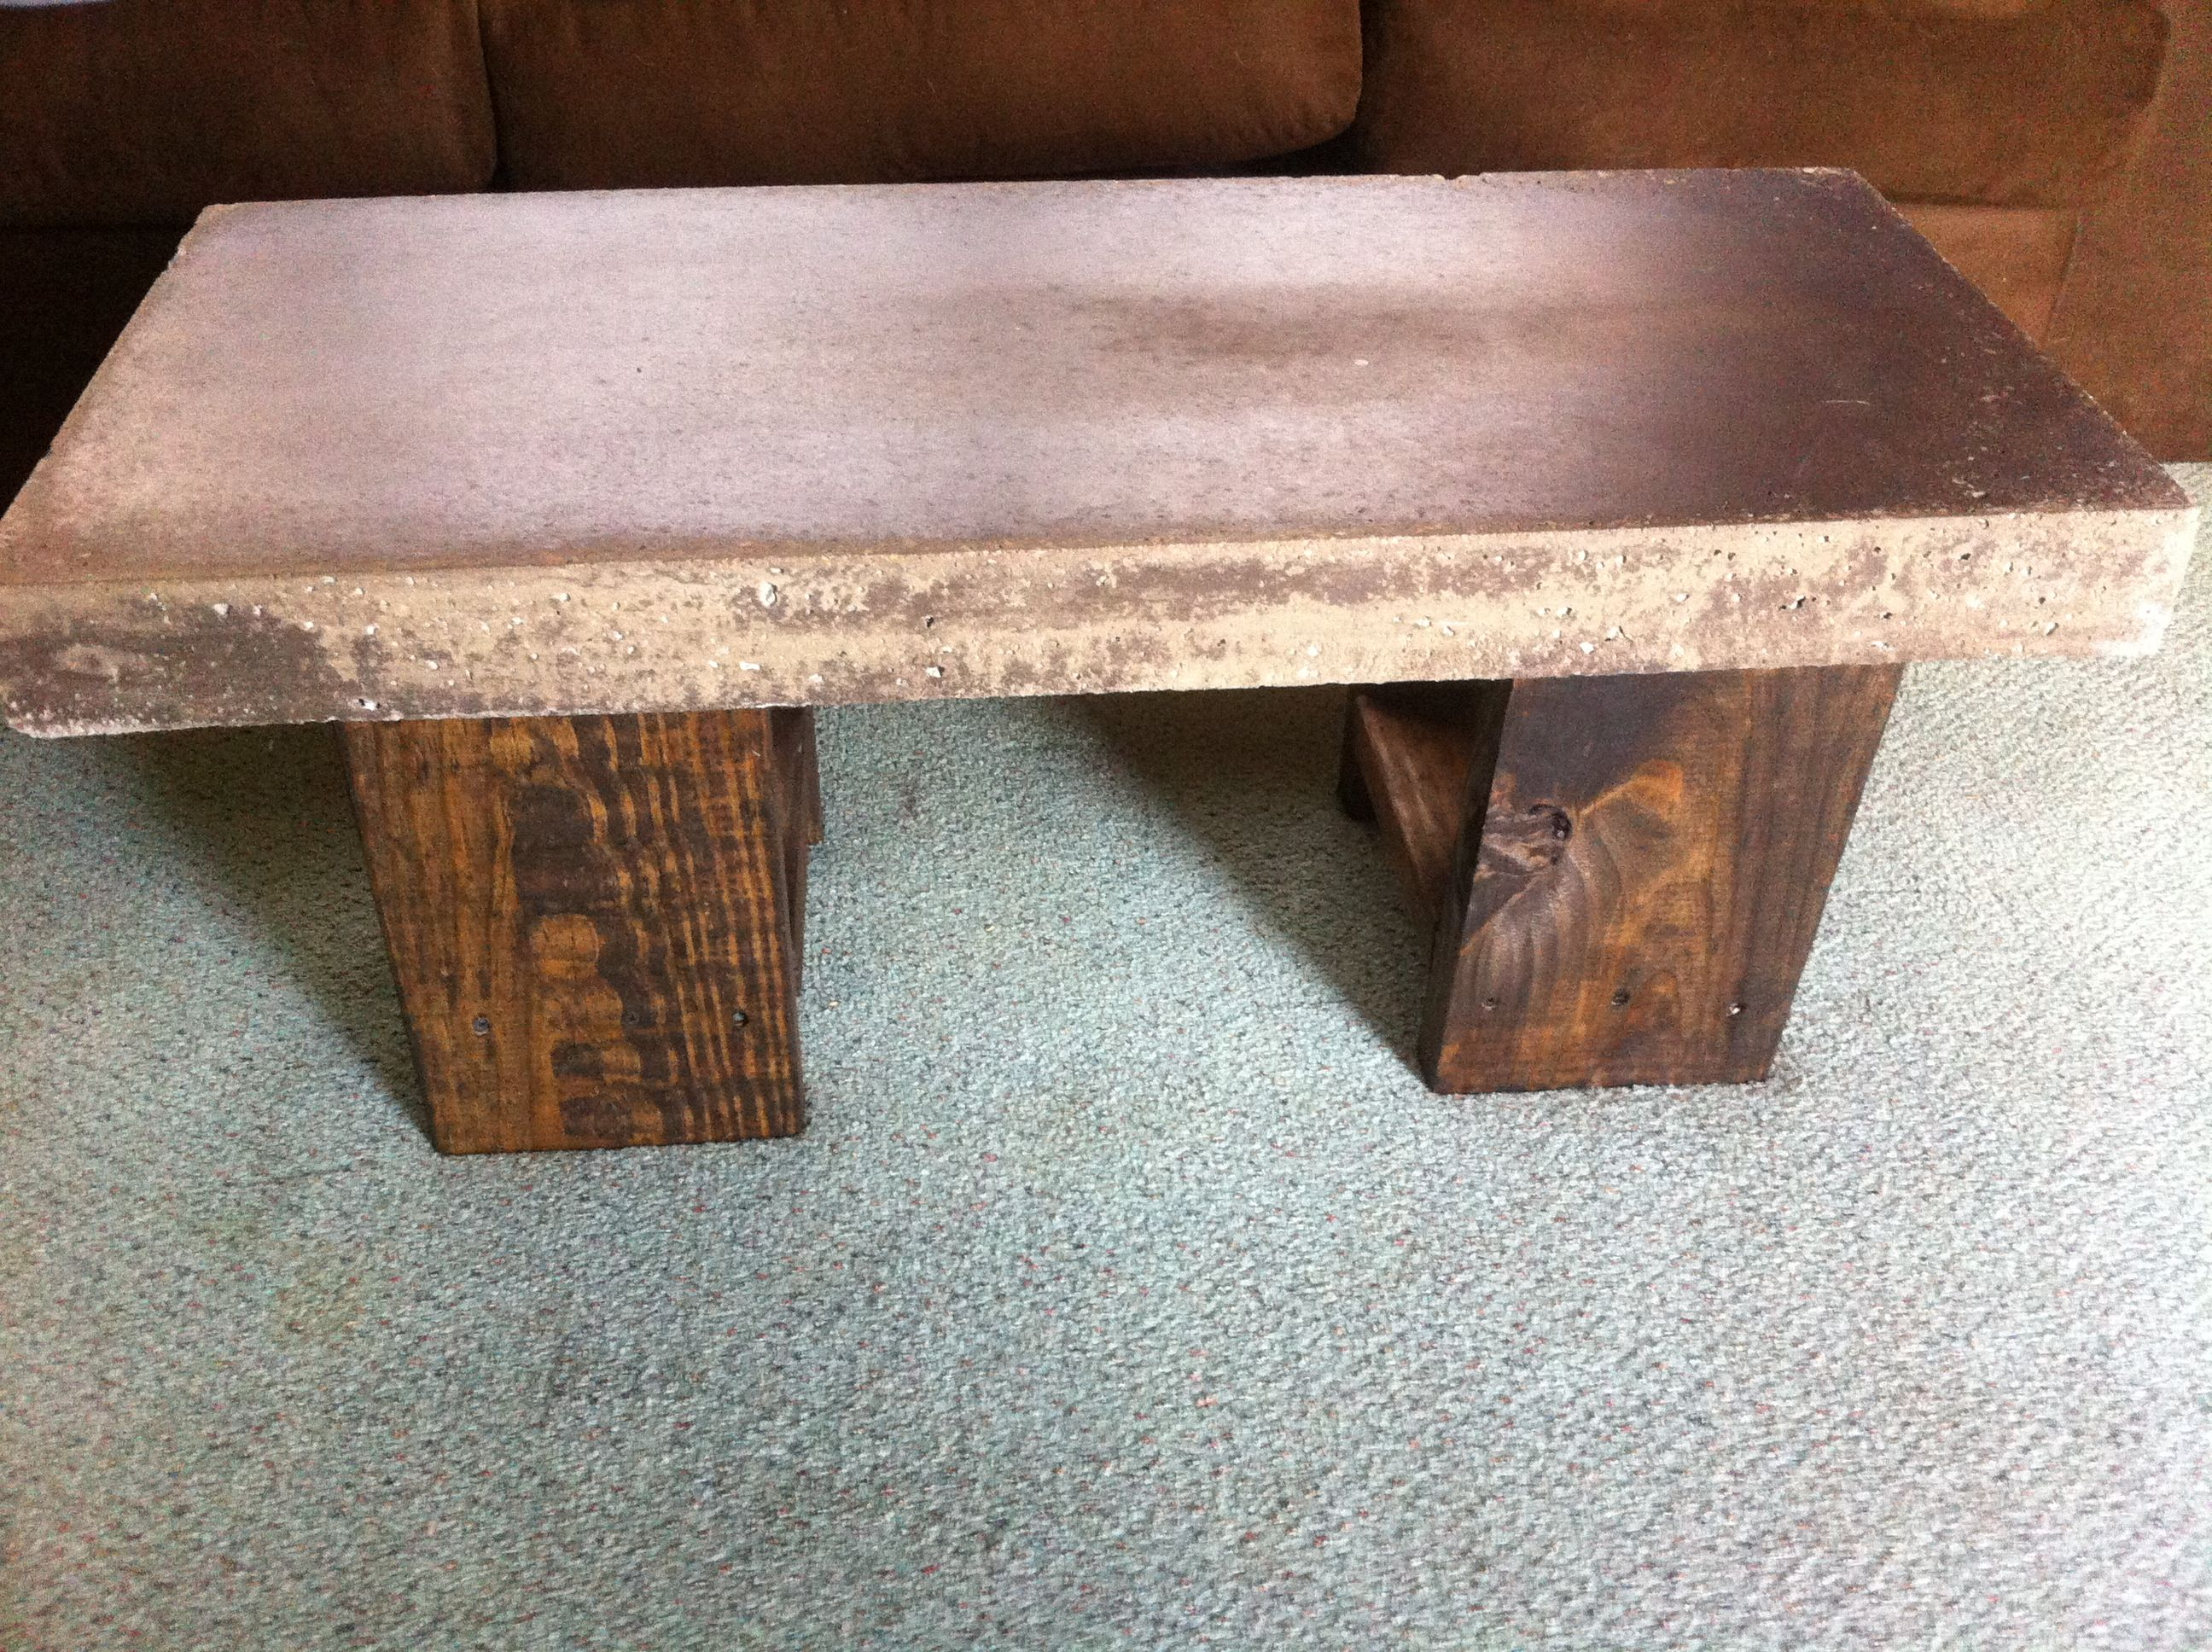 Concrete coffee table with Rocky Mountain colored acid stain